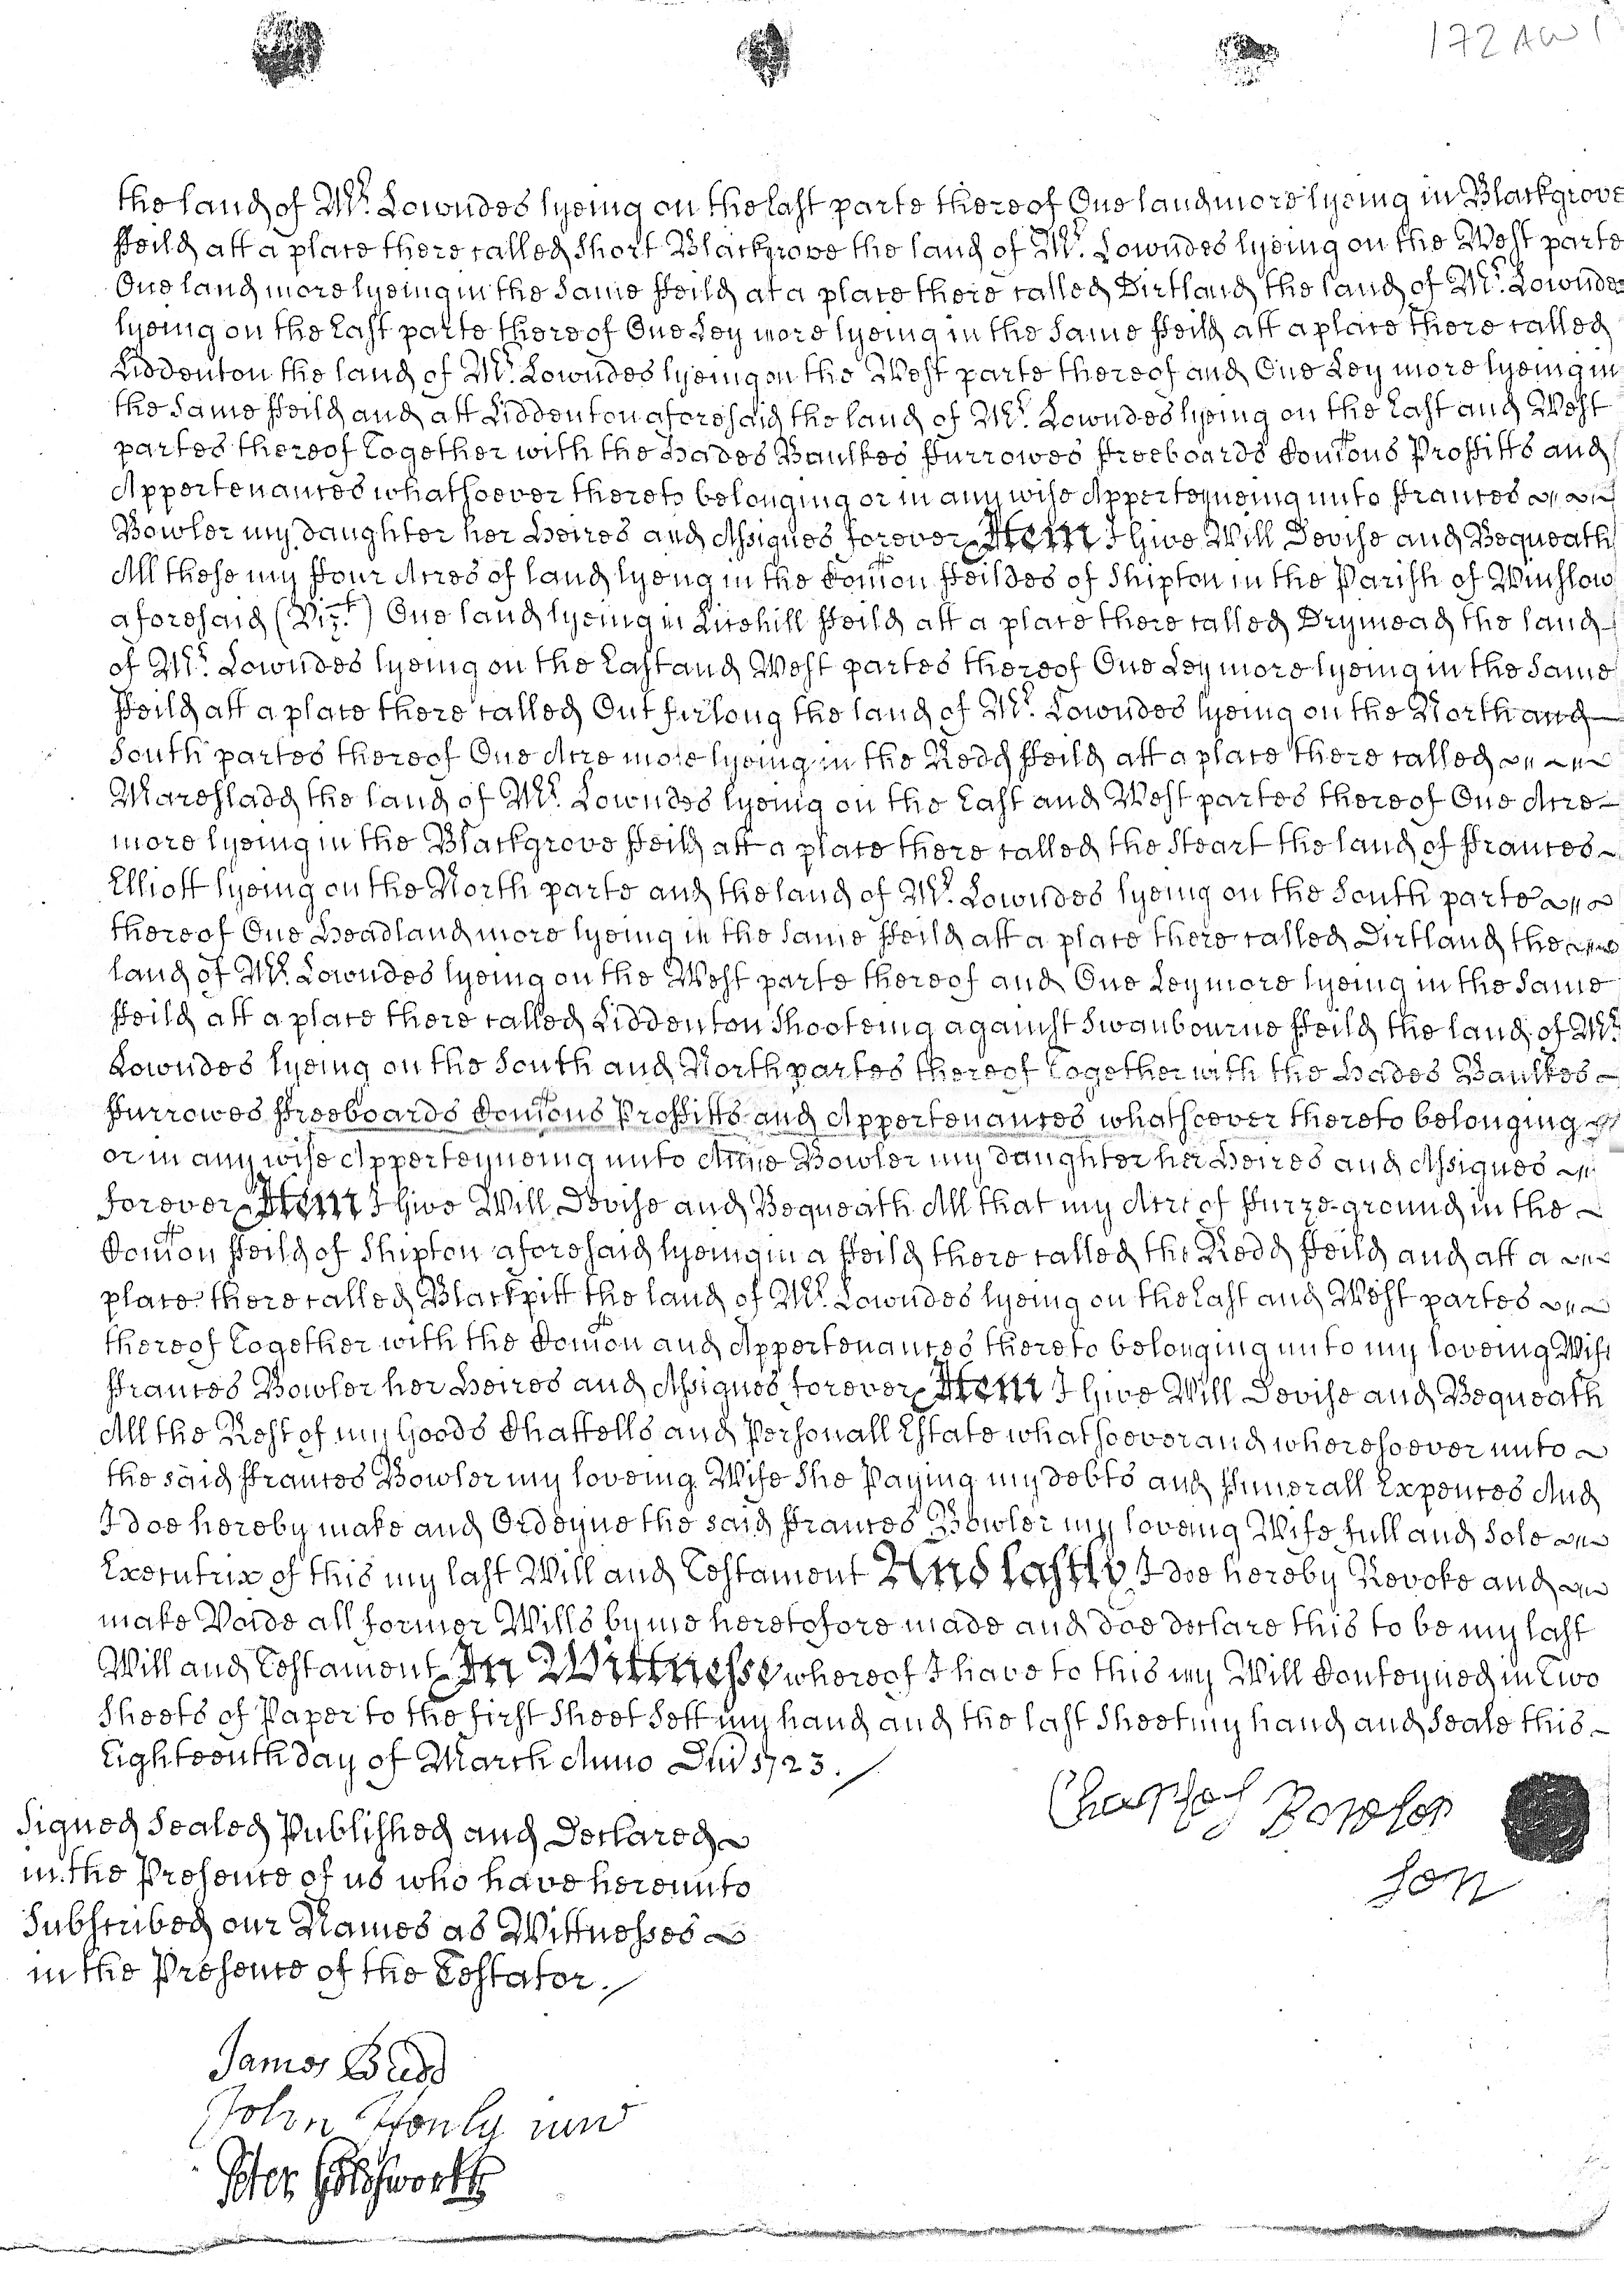 Will of Charles Bowler page 2